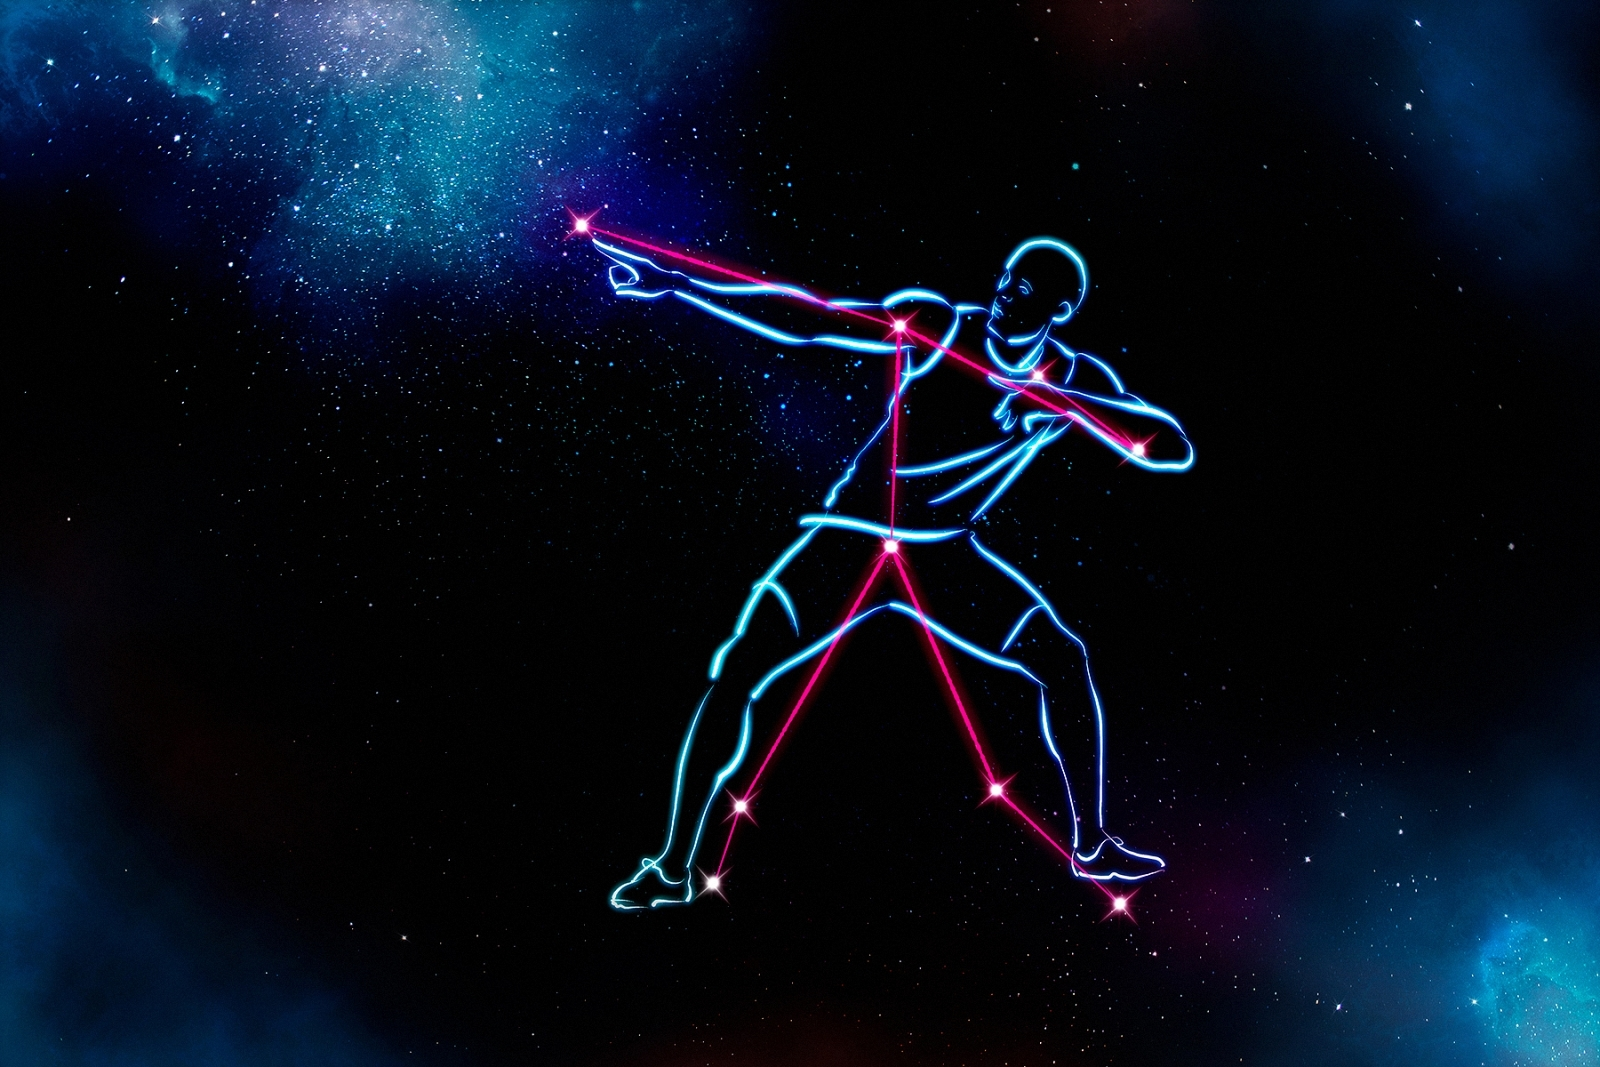 Usain Bolt constellation